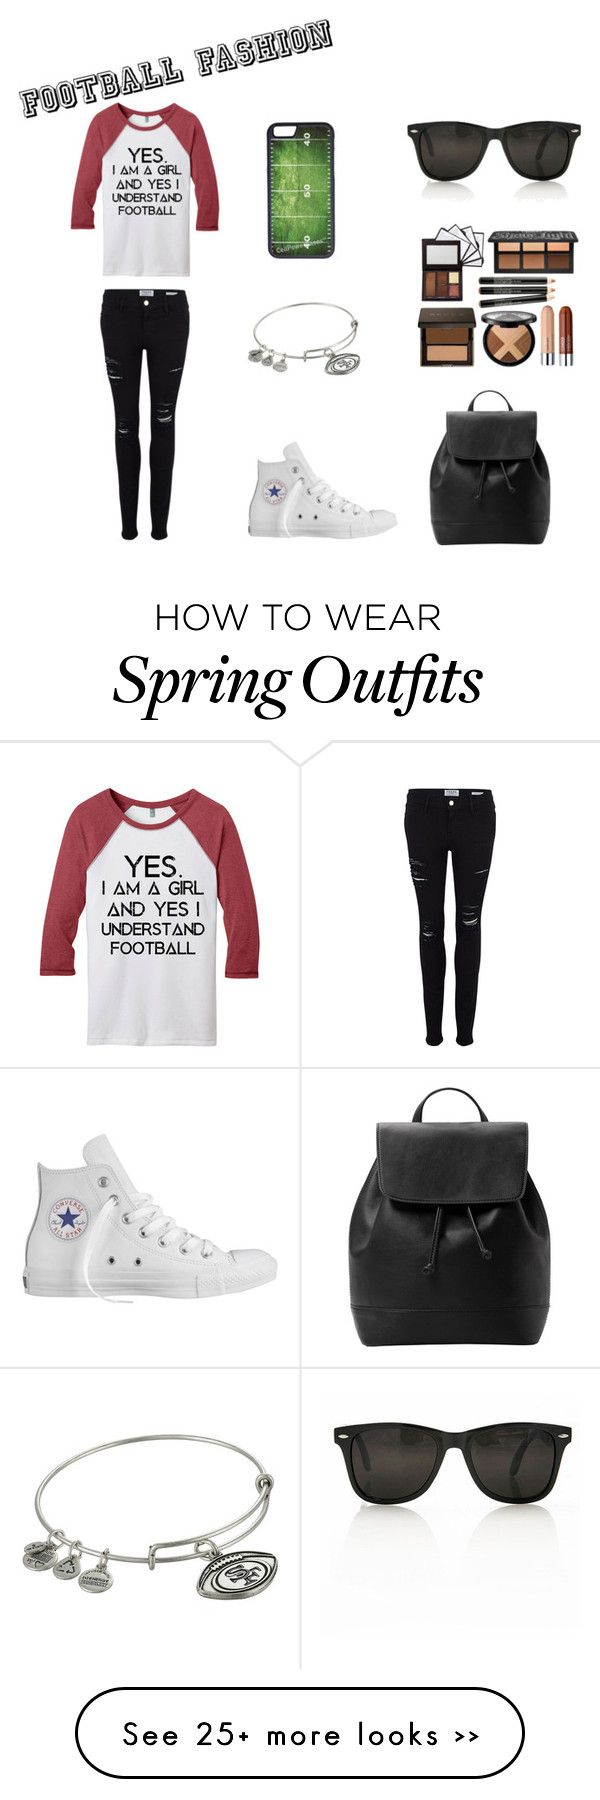 """Yes... I UNDERSTAND football"" by moderndaygamer on Polyvore featuring Frame Denim, CellPowerCases, Alex and Ani, MANGO and Converse"